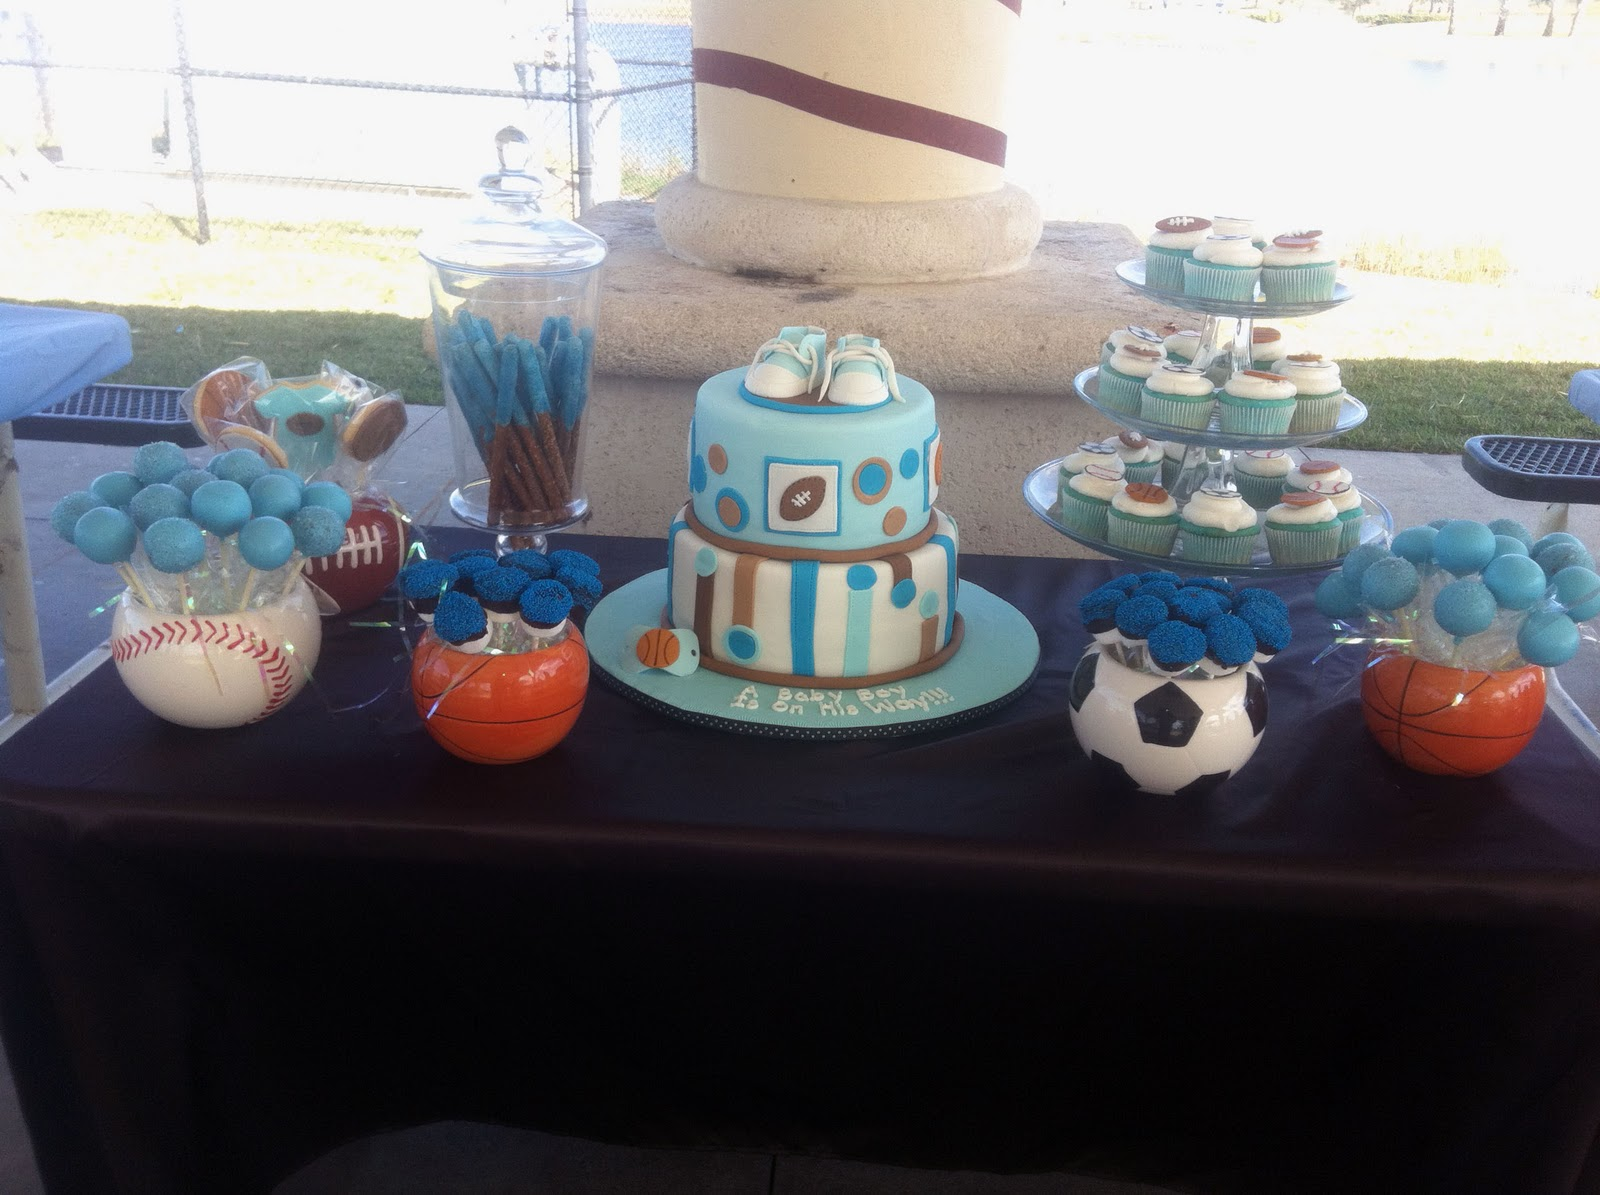 Leelees Cakeabilities All Star Sports Theme Cake and Goodies